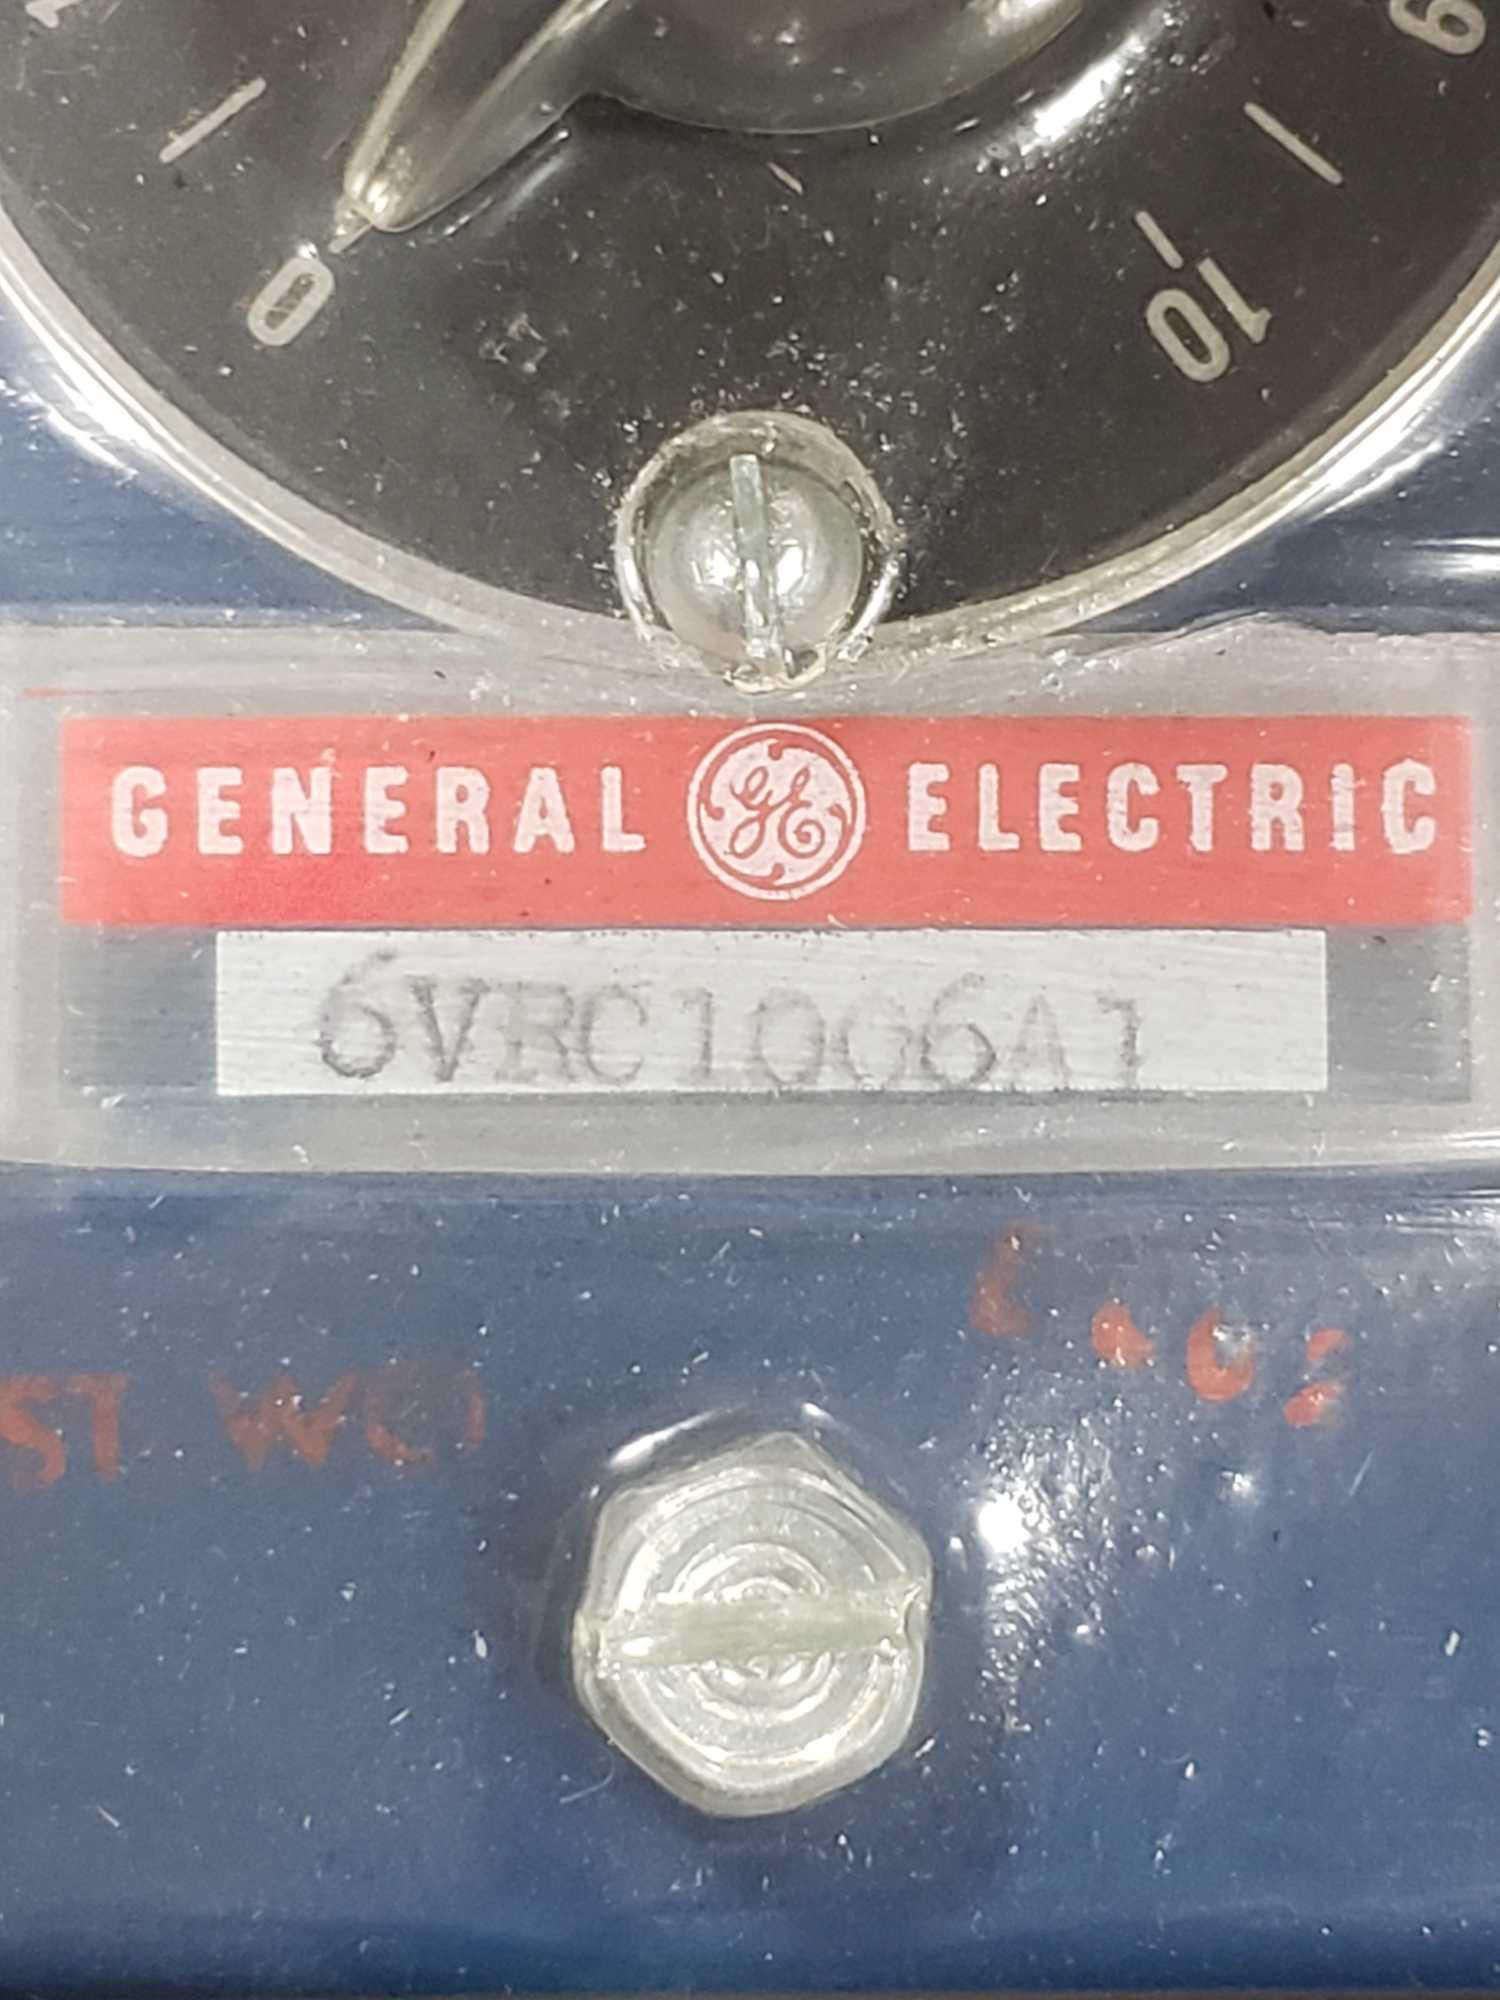 GE Statotrol station controller model 6VRC1006A1. New in box. - Image 2 of 2